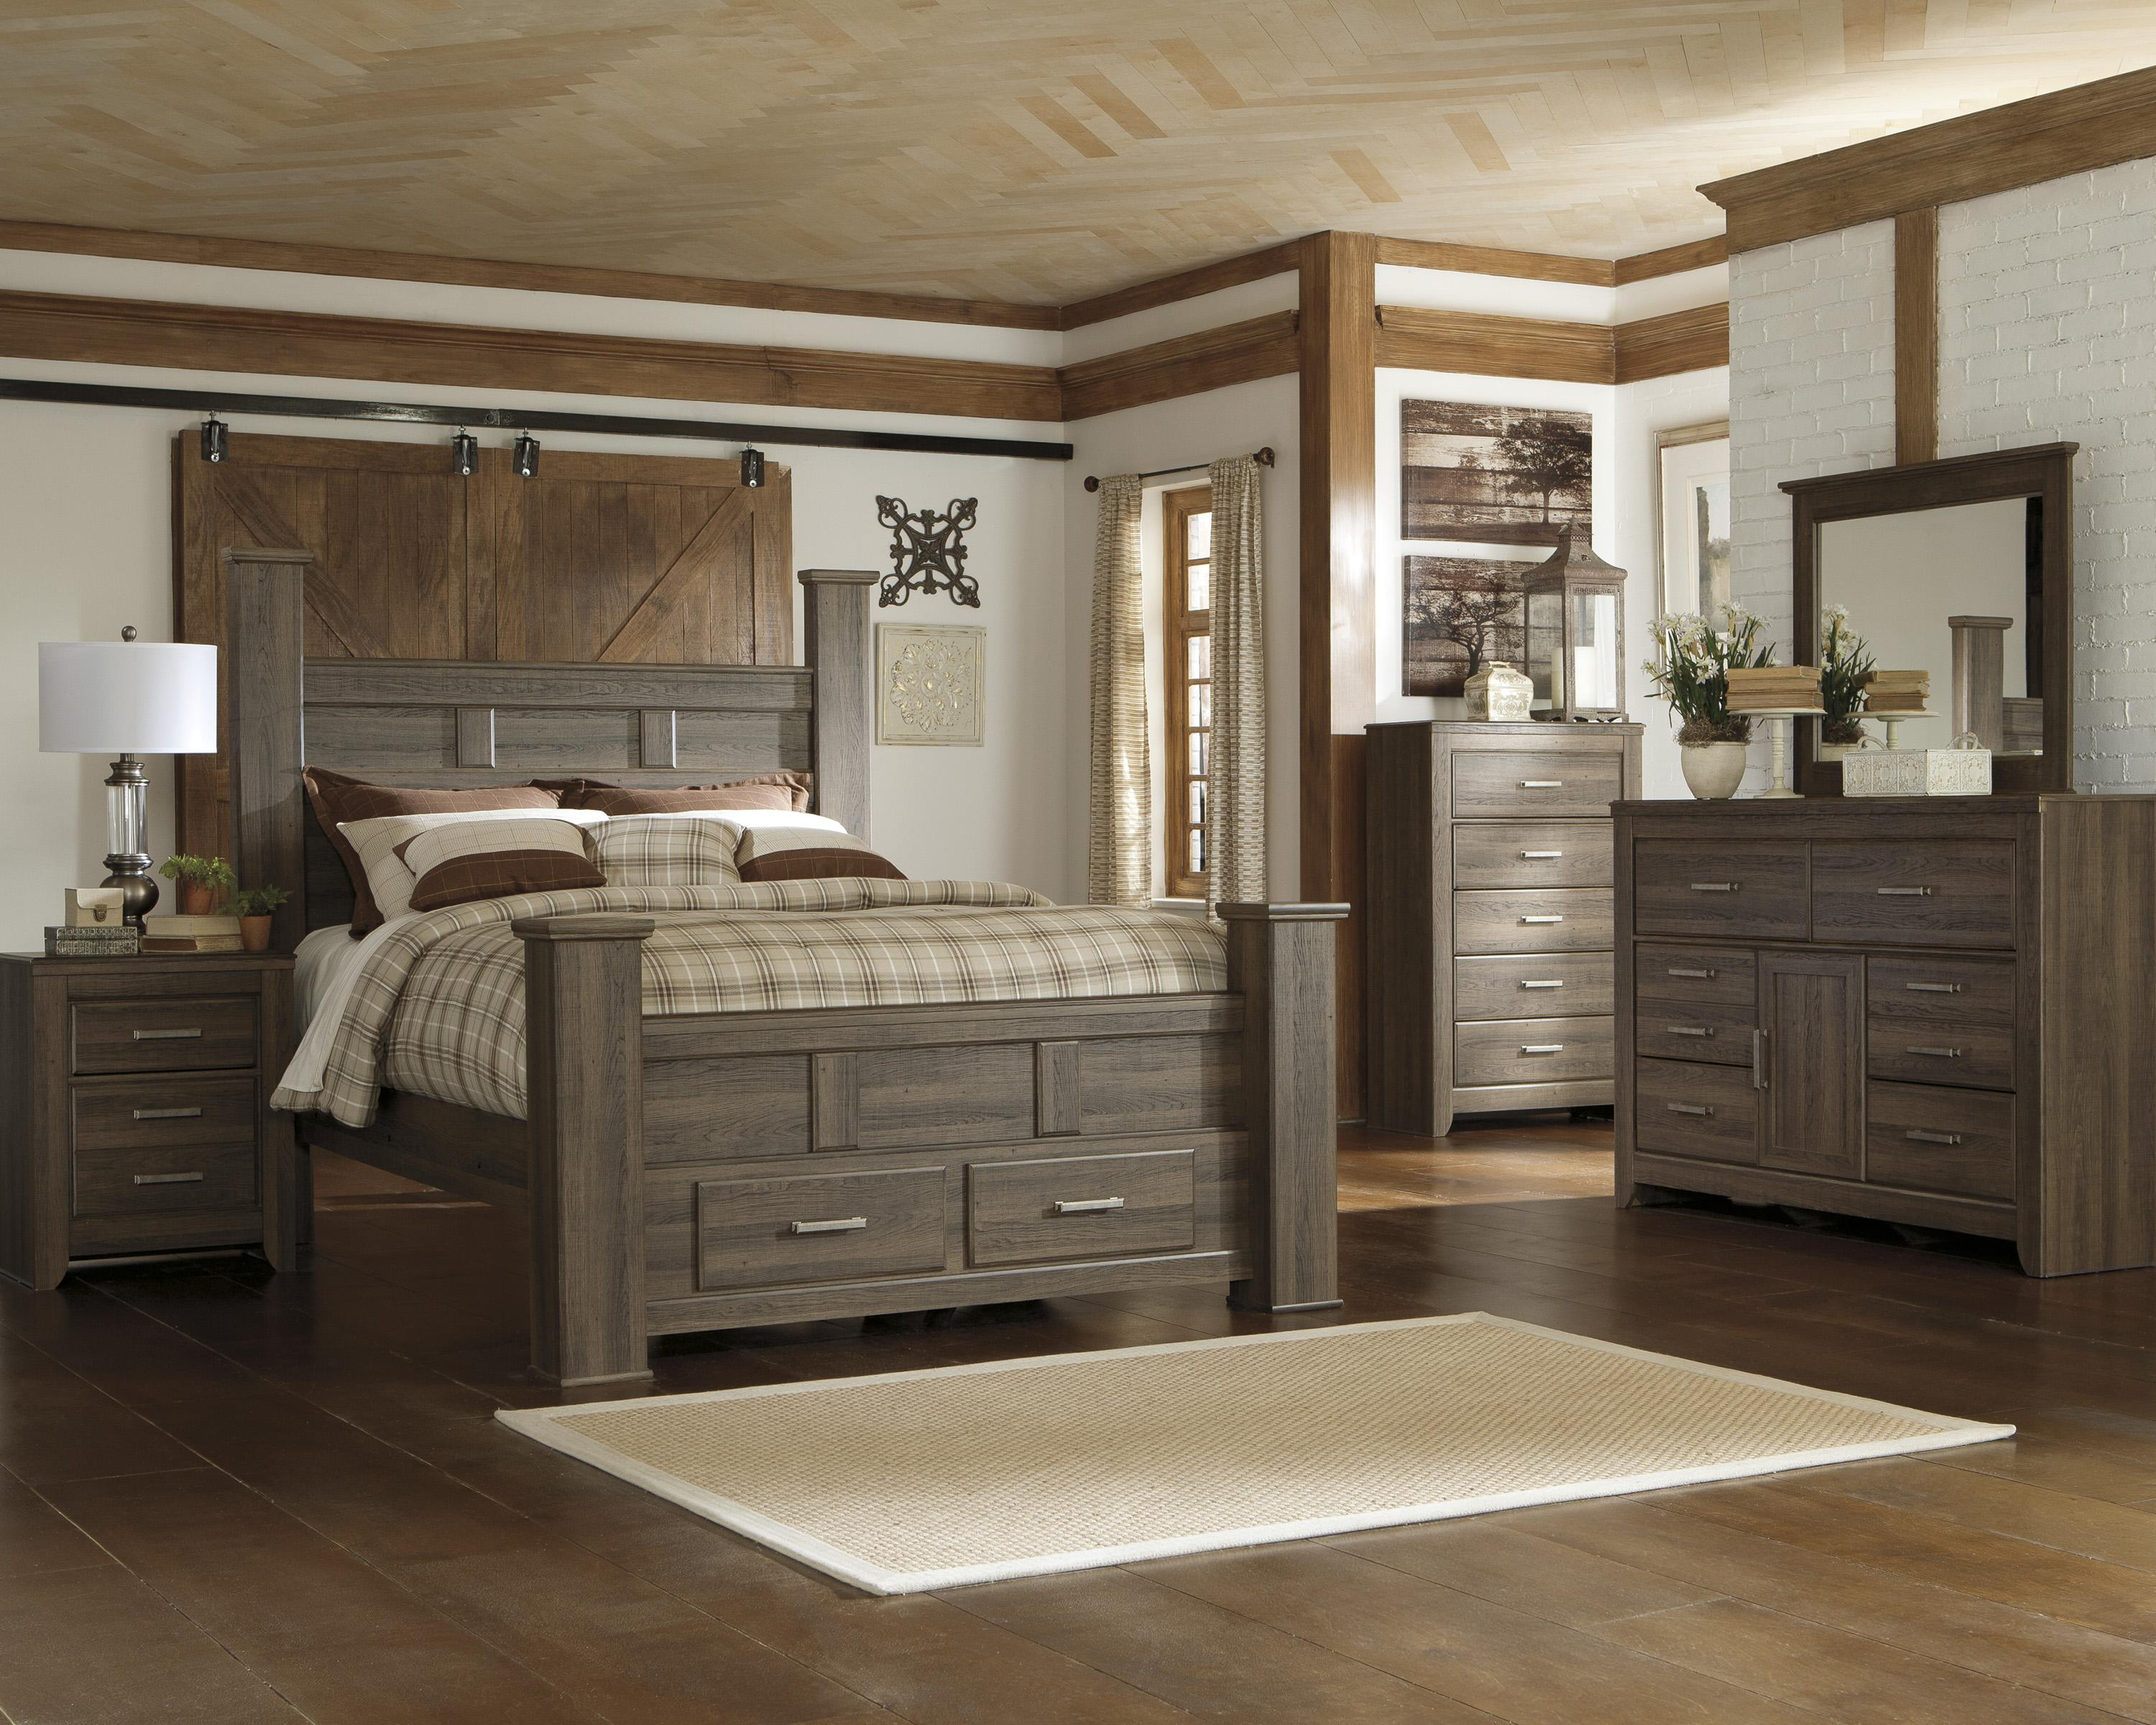 Shop By Style - Del Sol Furniture - Phoenix, Glendale, Tempe ...